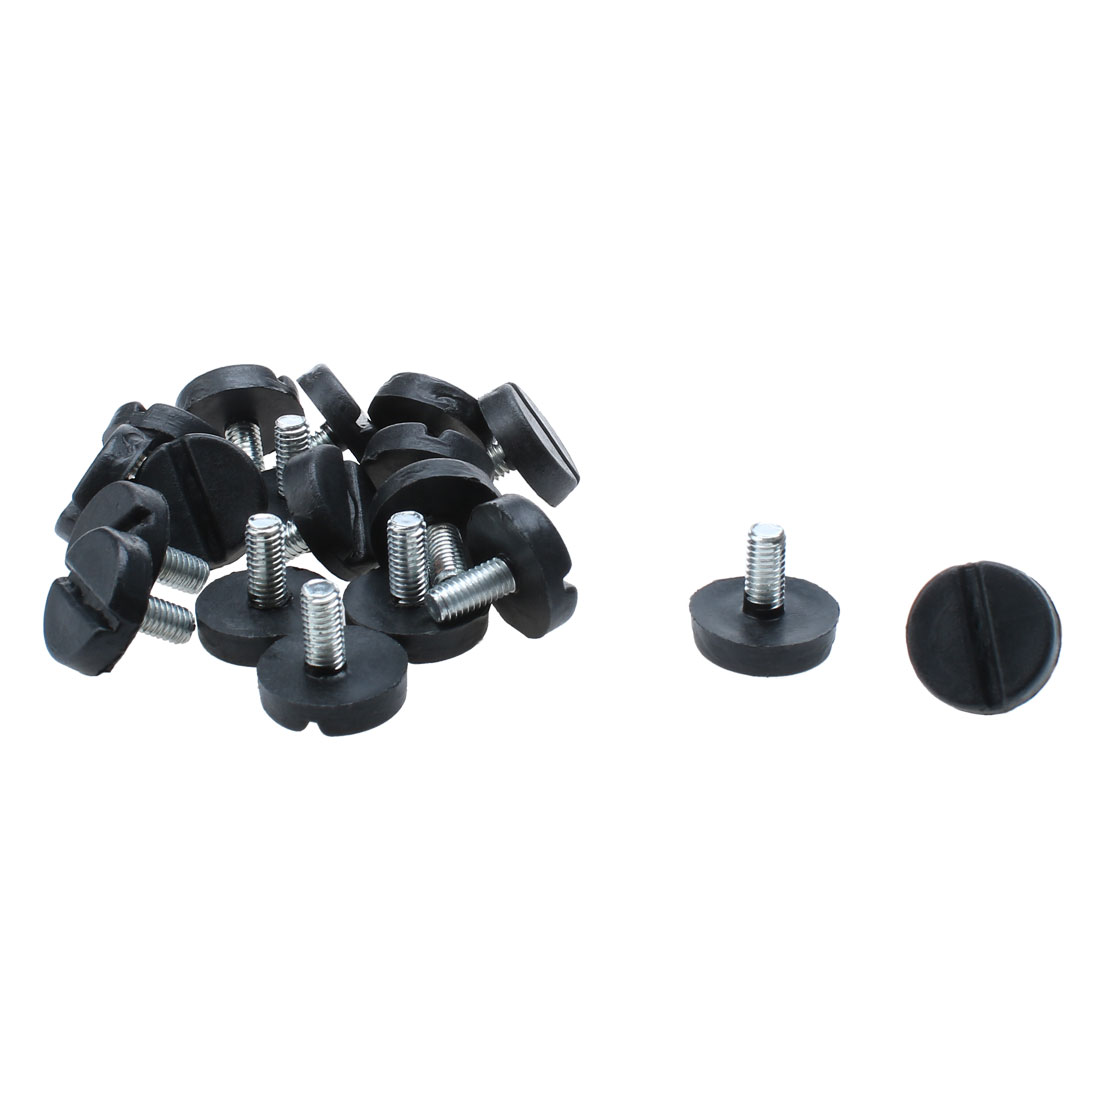 Furniture Adjustable Screw Slotted Head Leveling Feet Black Silver Tone M6x13mm 20 Pcs